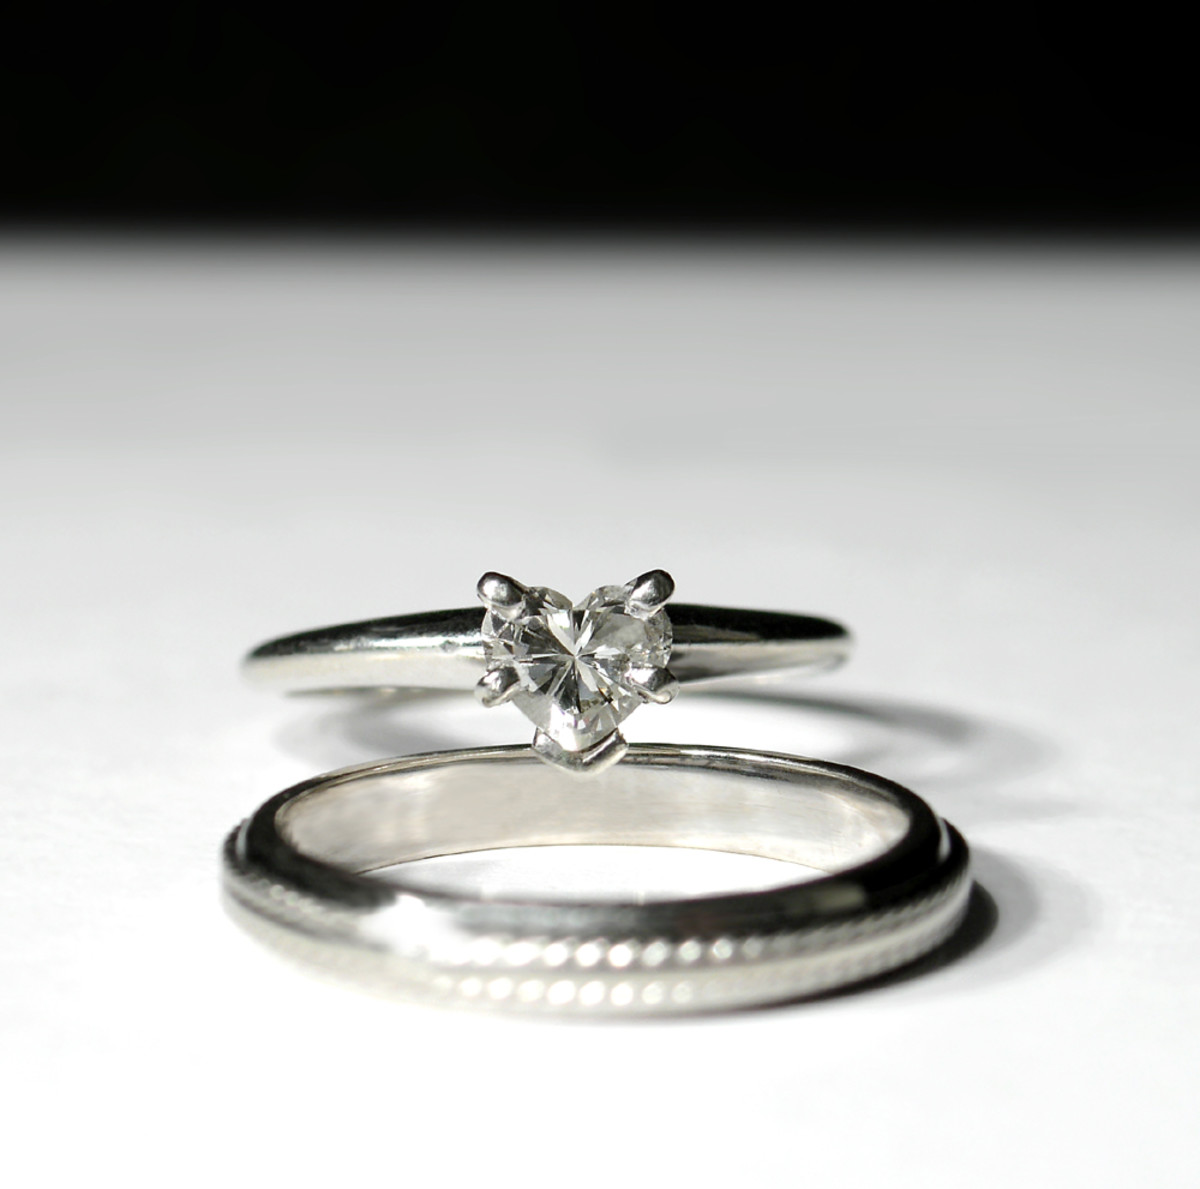 How much should an engagement ring cost hubpages for How much wedding ring cost